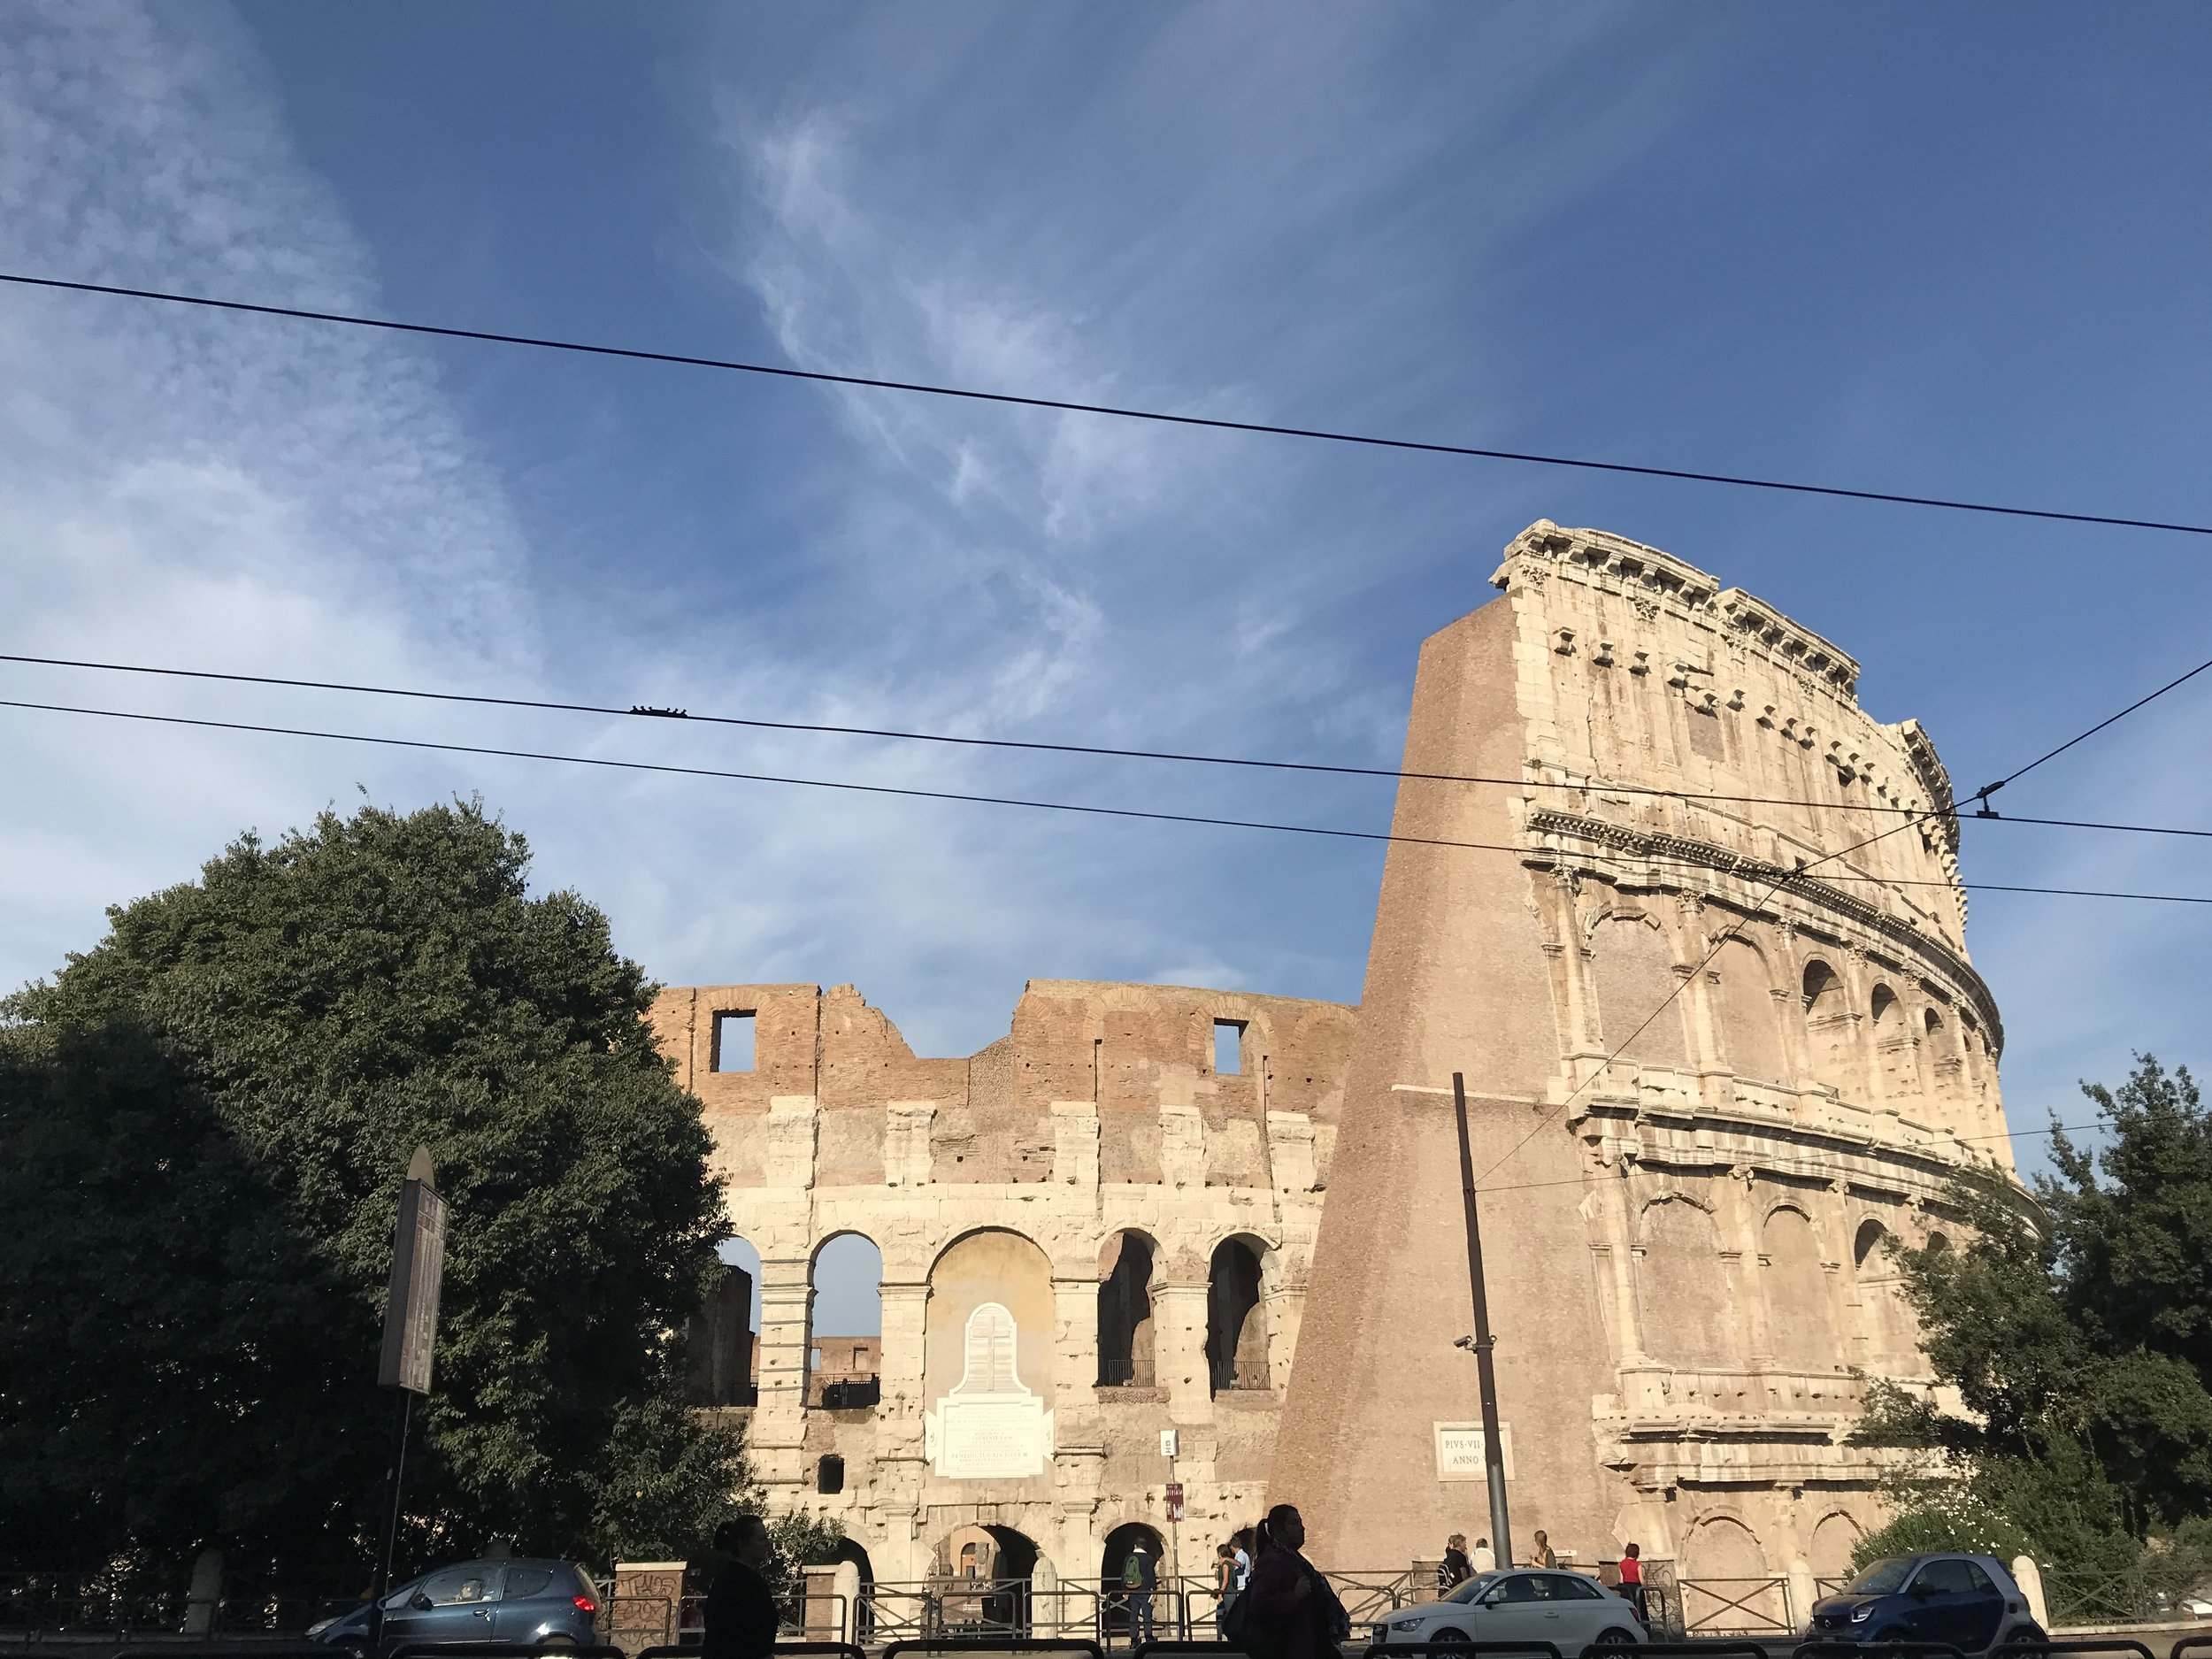 The Colosseum at the end of my street.